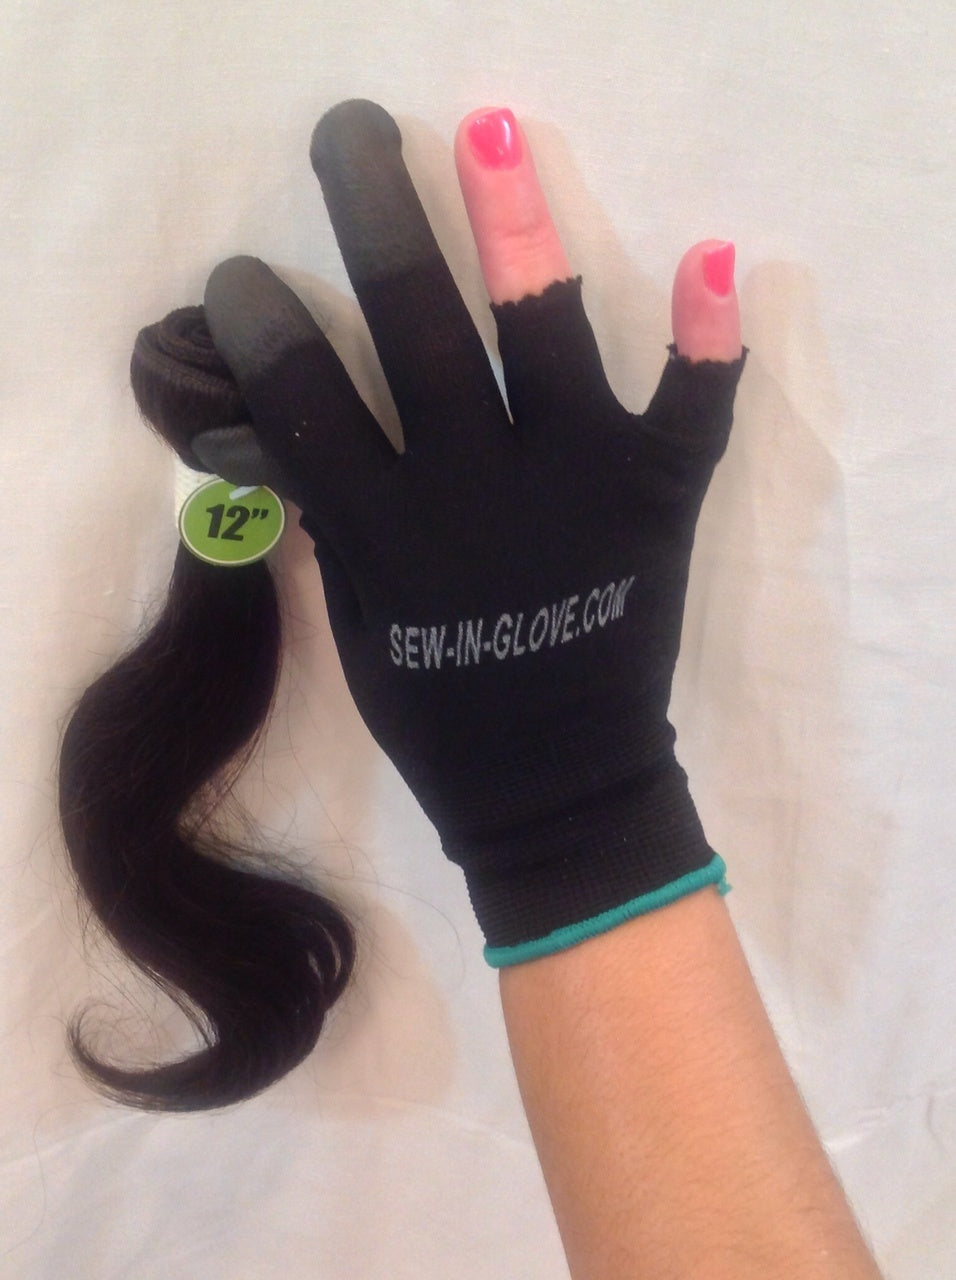 2 IN 1 Ladies Sew-in-glove/ Heat Resistant. Includes: 1. Sew -In- Glove  1 Needle and 1 Thread - Sew-in-glove